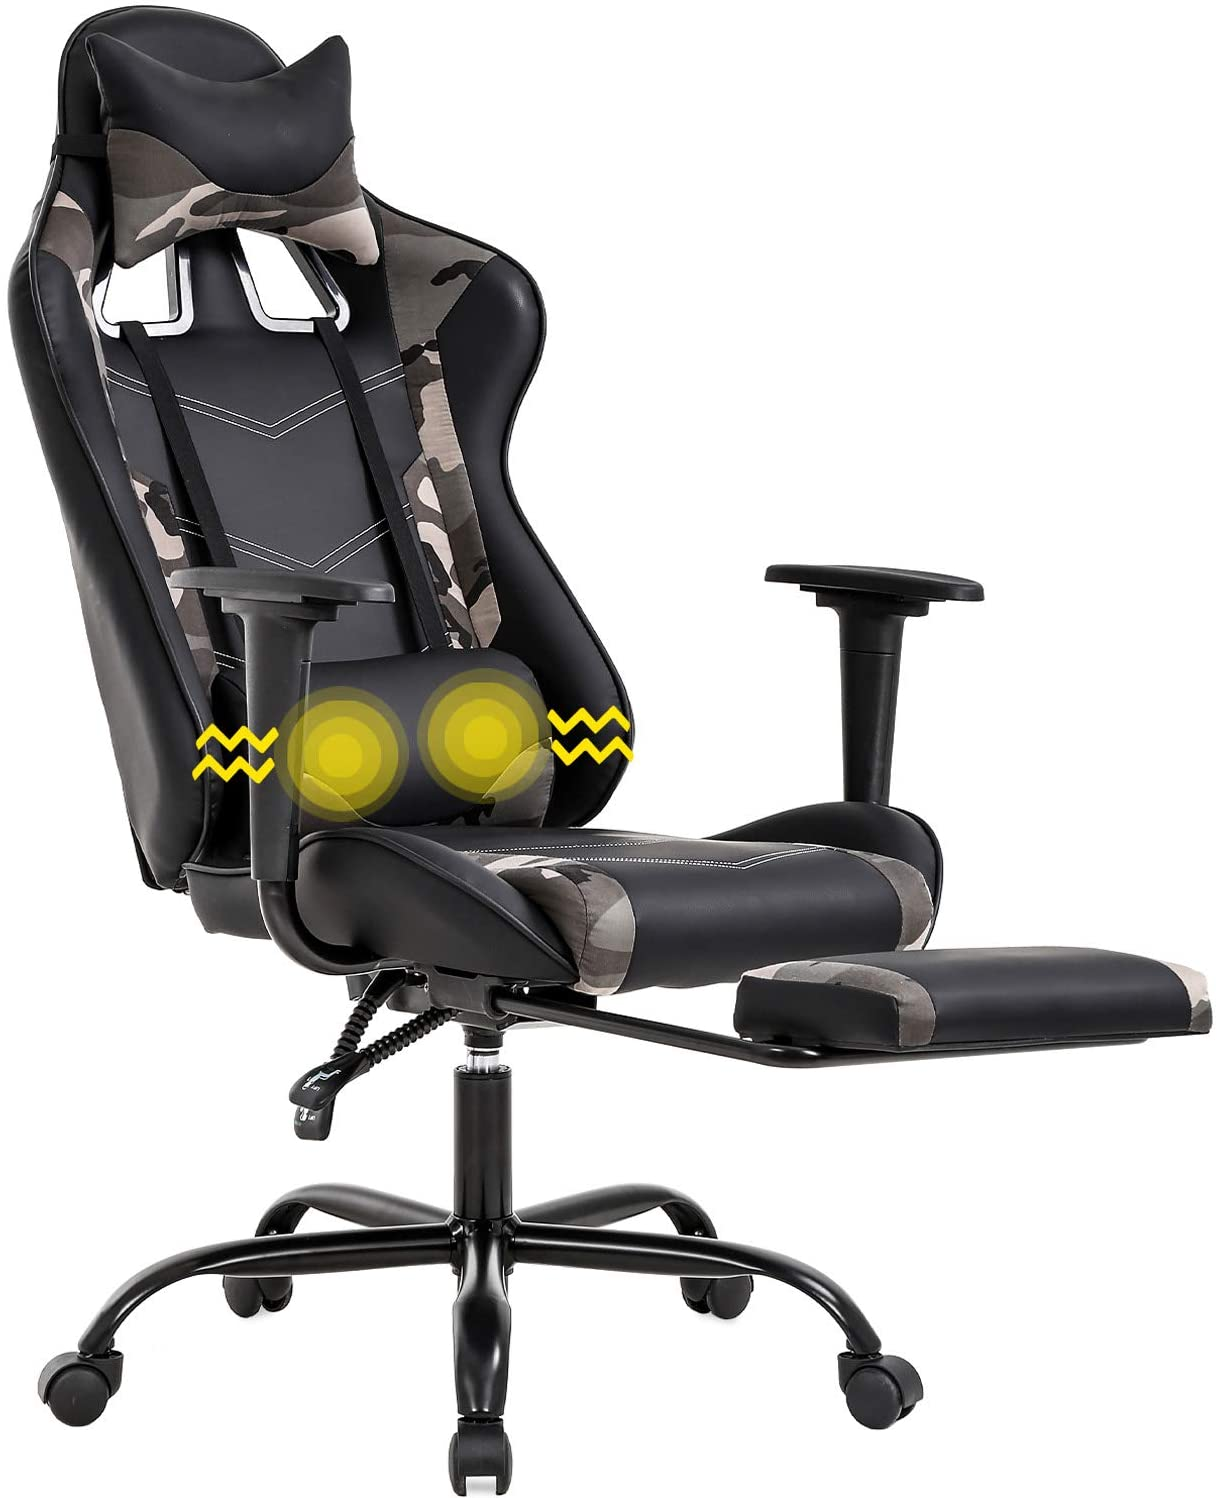 Gaming Chair Racing Office Chair Ergonomic Desk Chair Massage PU Leather Recliner PC Computer Chair with Lumbar Support Headrest Armrest Footrest Rolling Swivel Task Chair for Women Adults, Camo